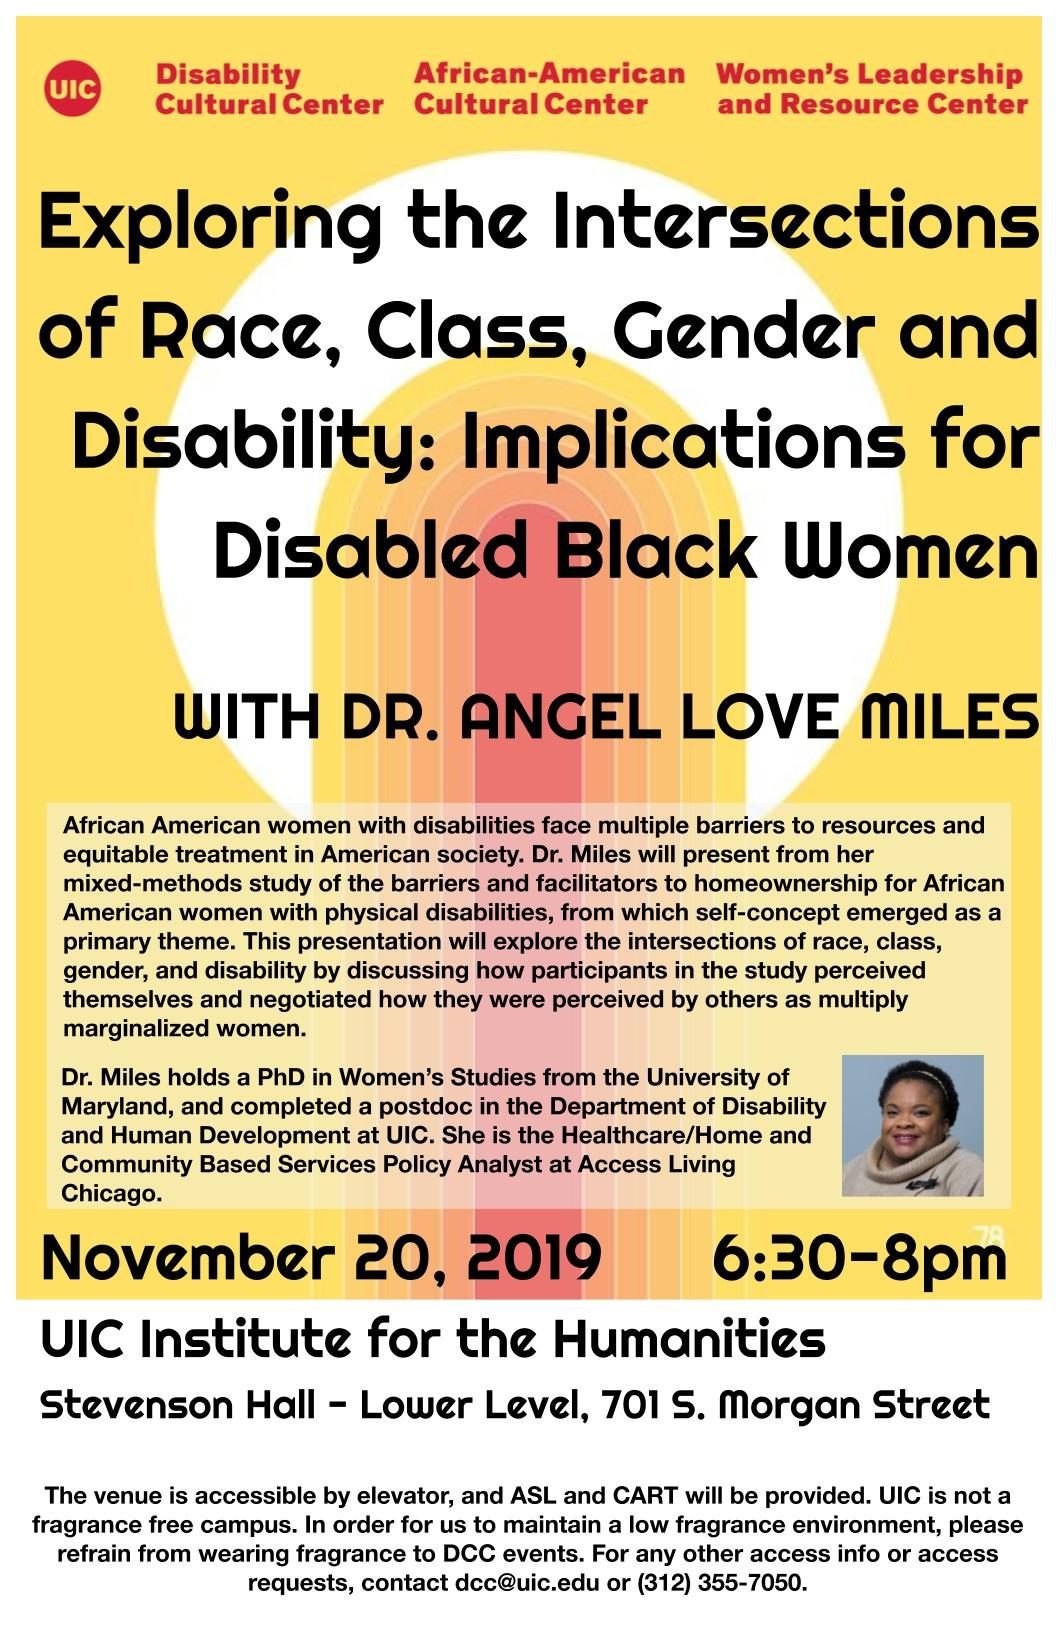 Exploring the Intersections of Race, Class, Gender and Disability flyer